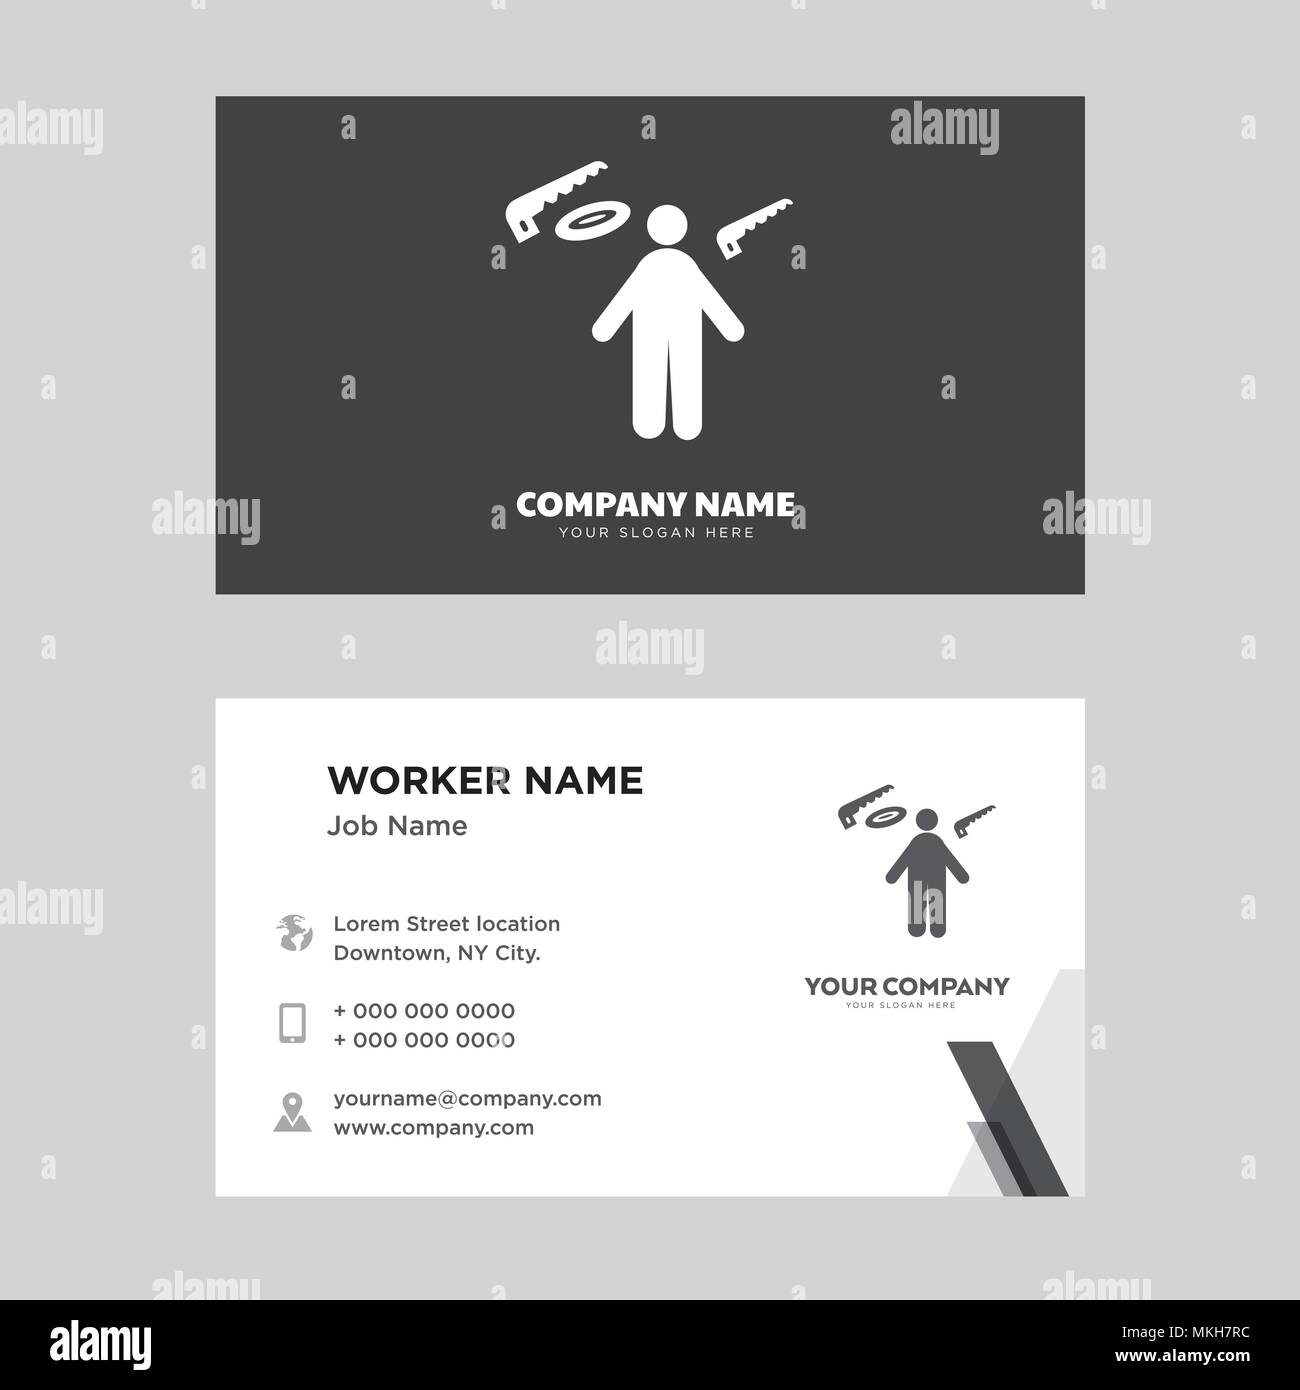 Carpenter business card design template visiting for your company carpenter business card design template visiting for your company modern horizontal identity card vector accmission